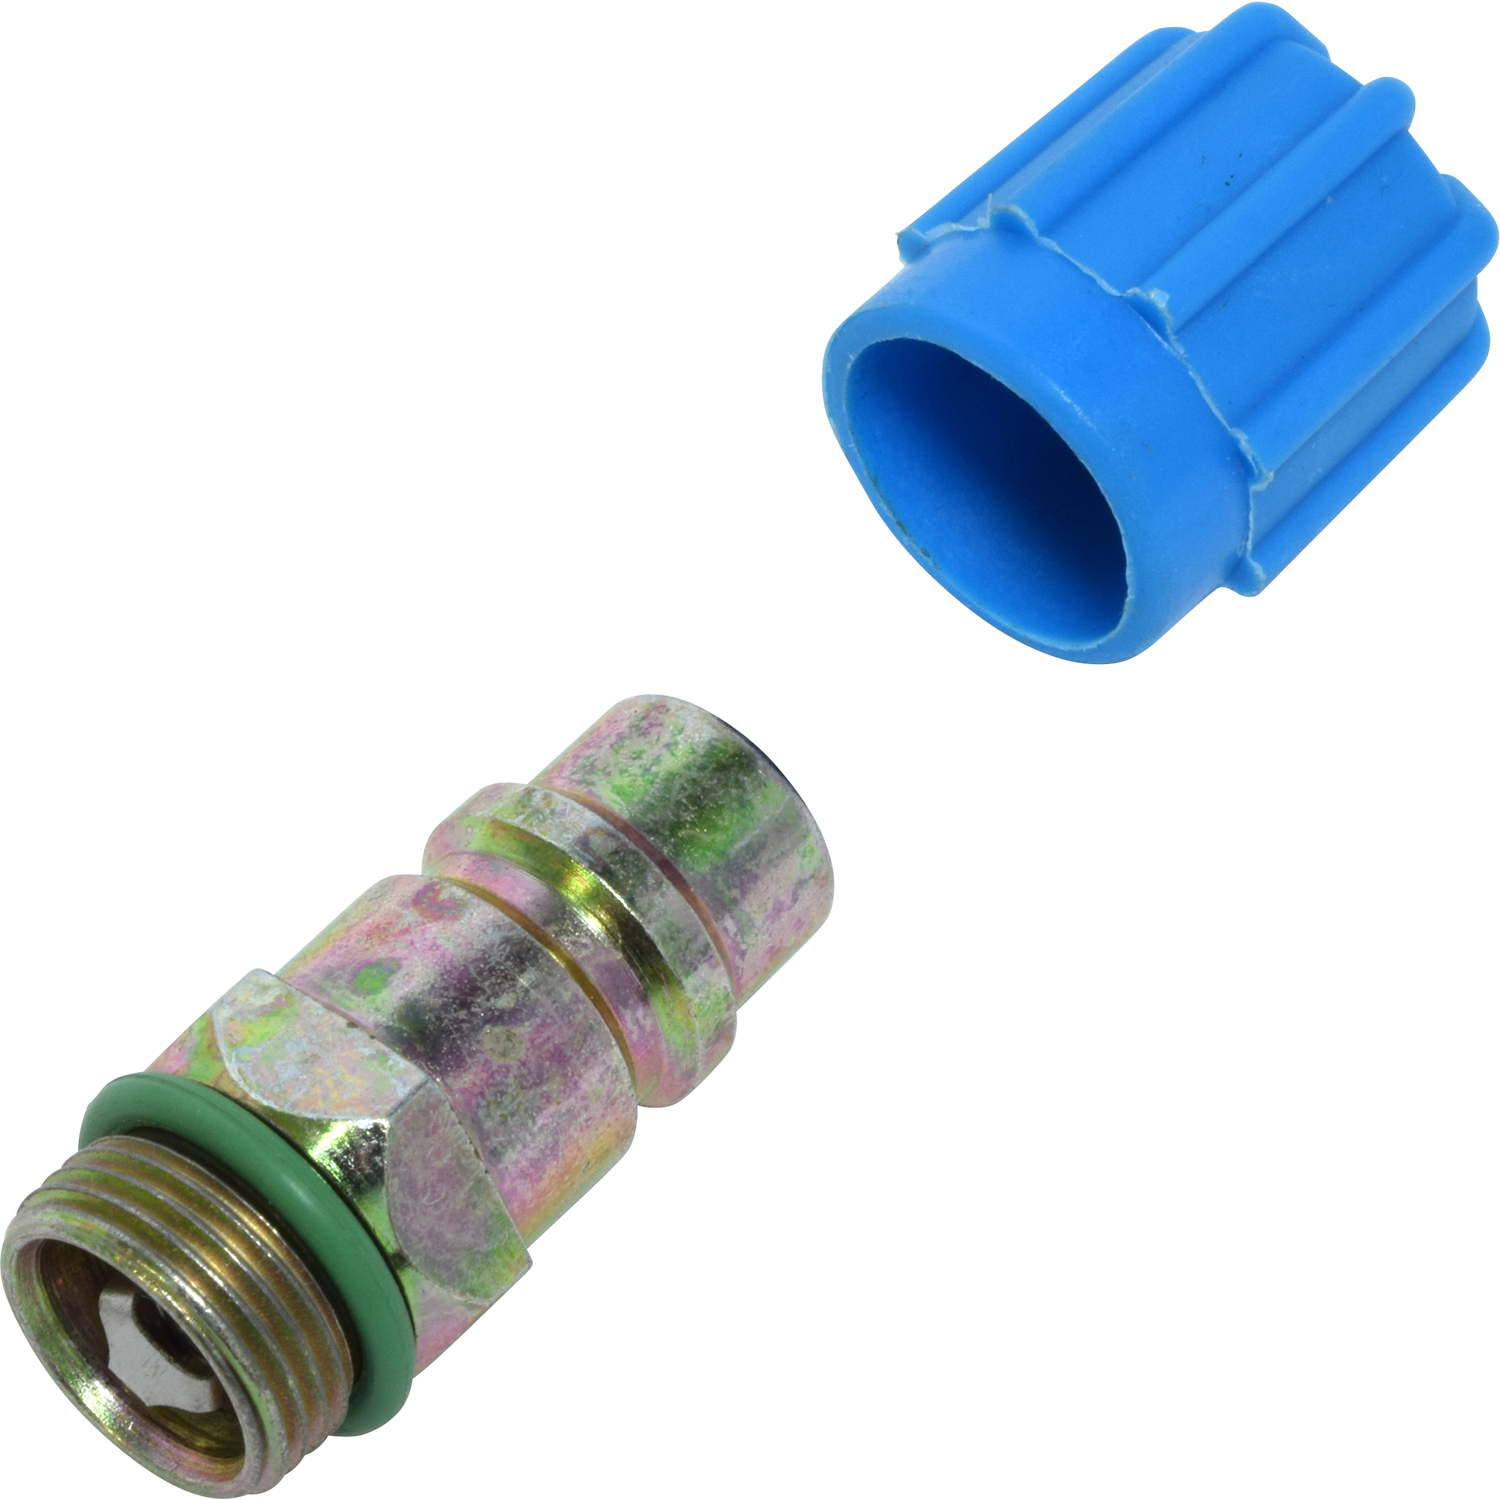 Service Port Adapter LOW SIDE HI FLOW FTG